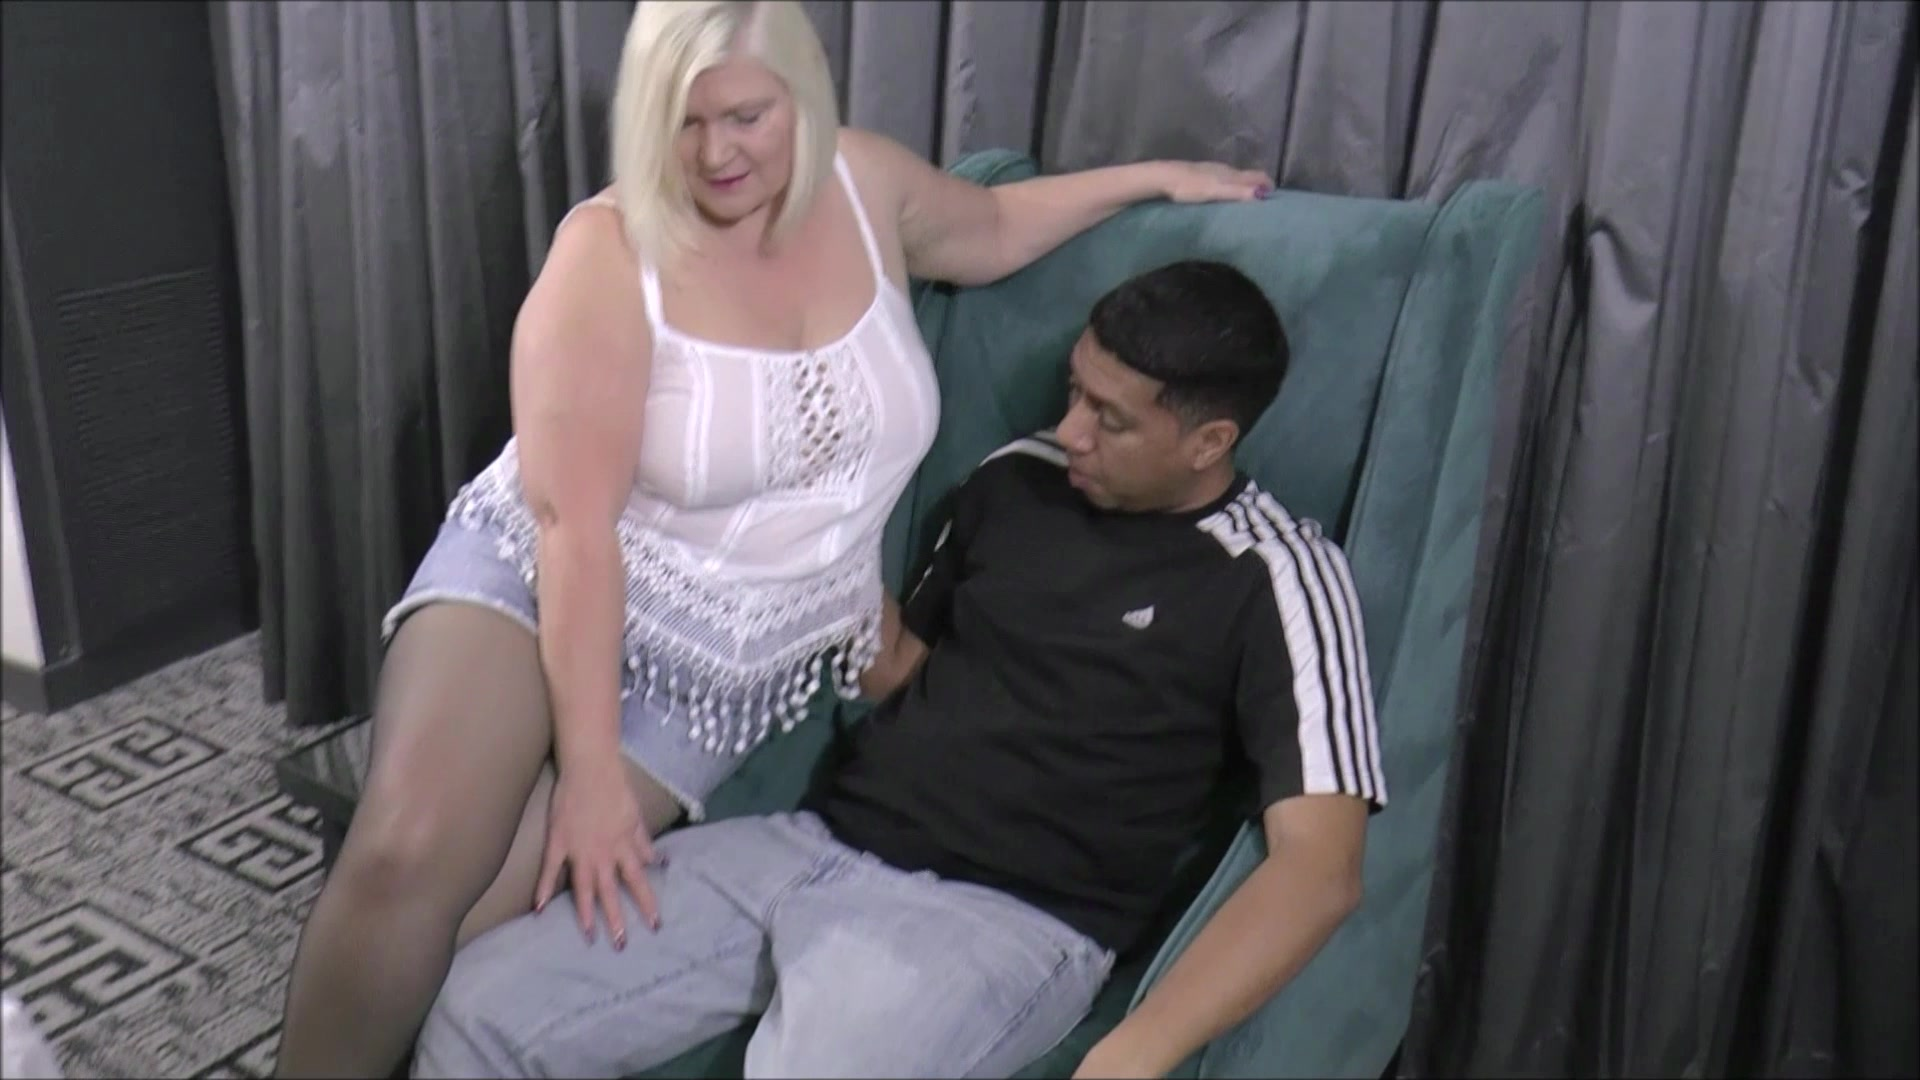 Blonde Granny Lacey Starr Fucks a Black Cock from Love Affair With Grandma  | Older Women | Adult Empire Unlimited